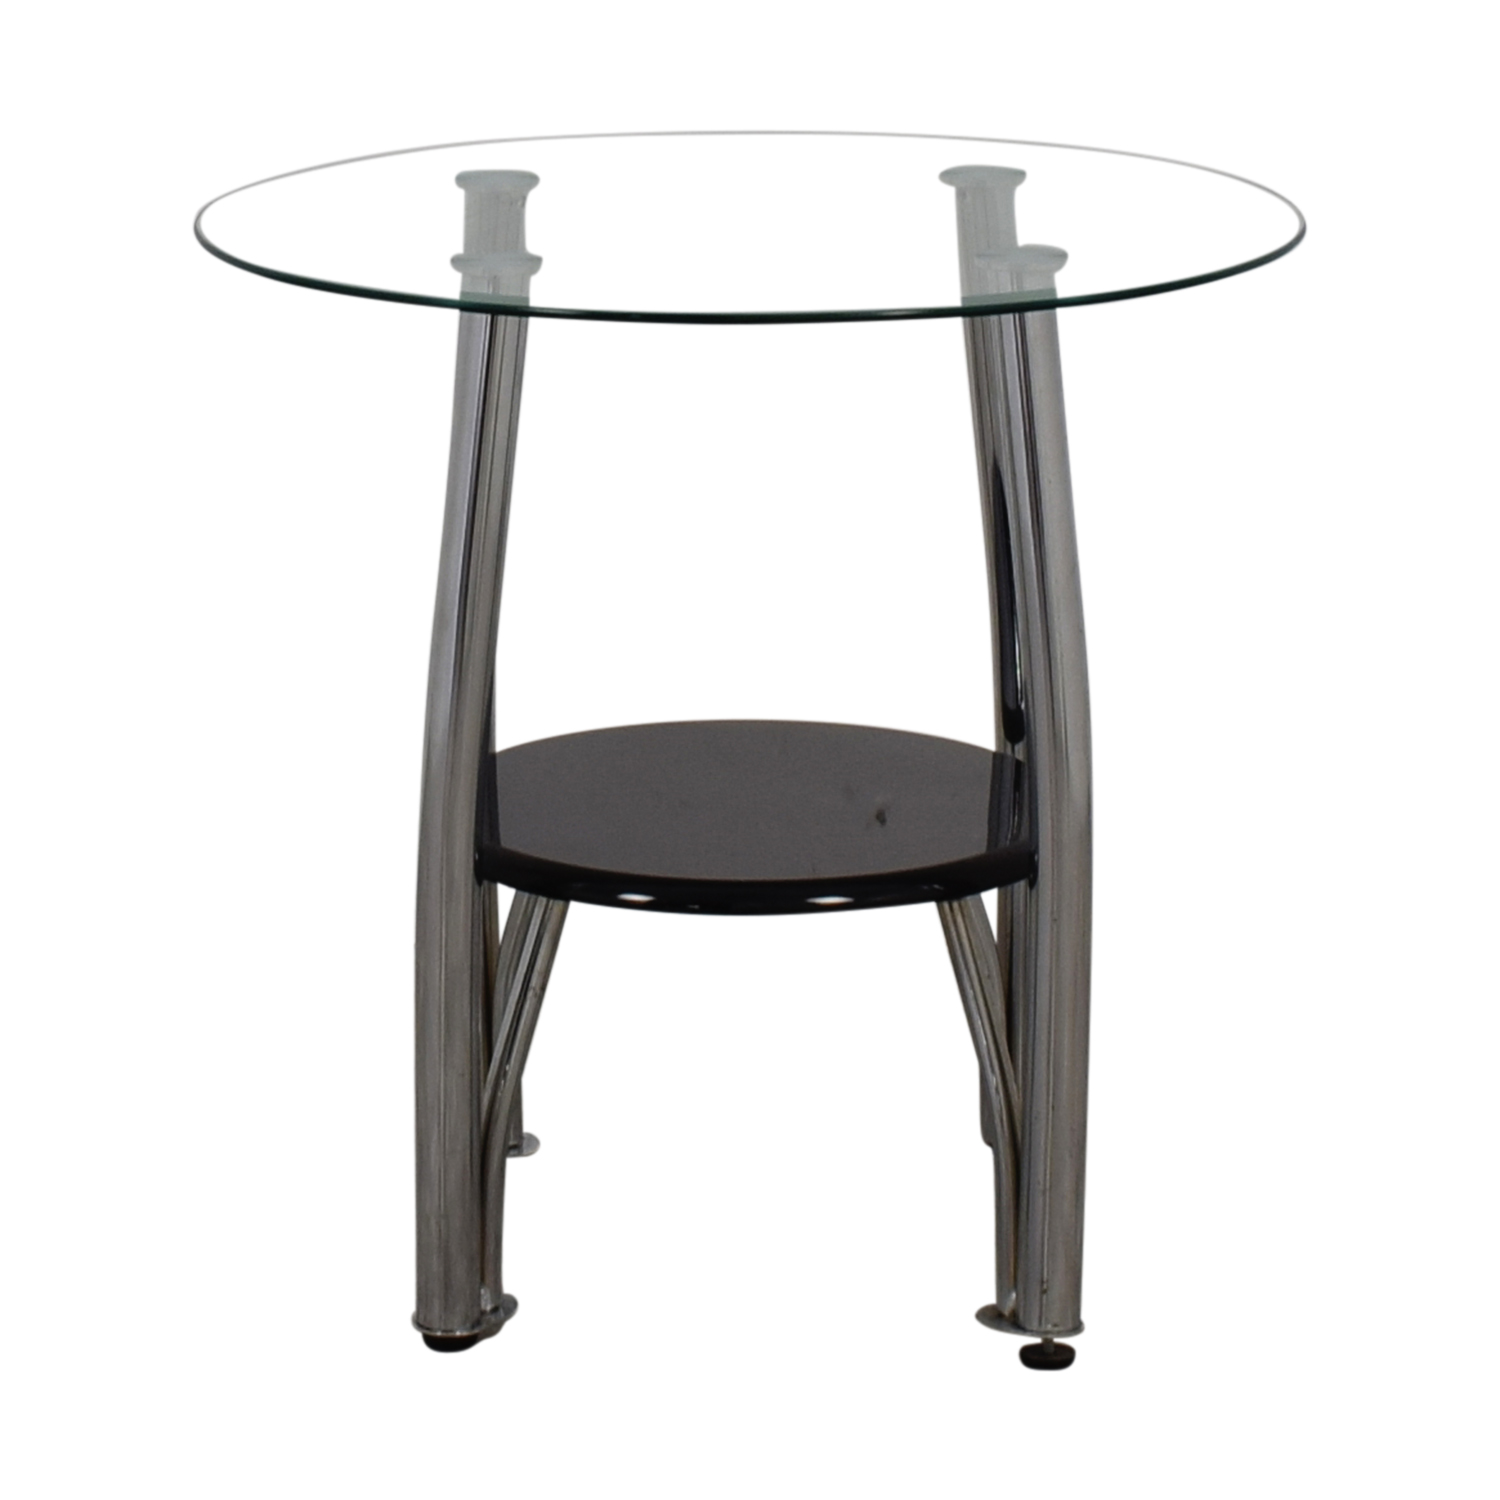 Black End Tables With Drawer 86 Off Ashley Furniture Ashley Furniture Round Glass And Black End Table Tables